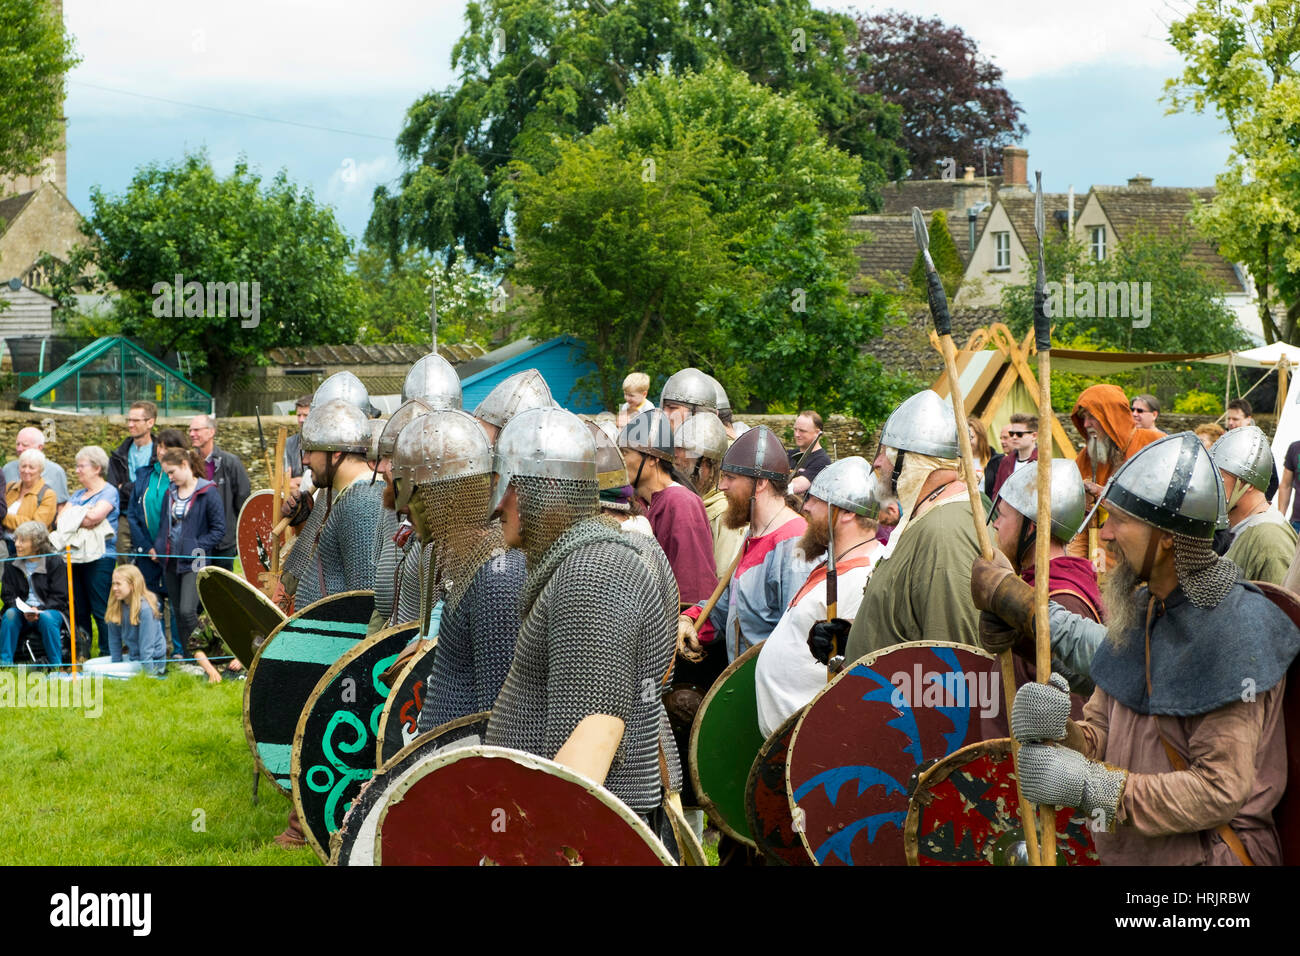 Sherston, Wiltshire, UK - 25th June 2016: Viking re-enactors celebrate the battle that took place in 1016 when Cnut - Stock Image